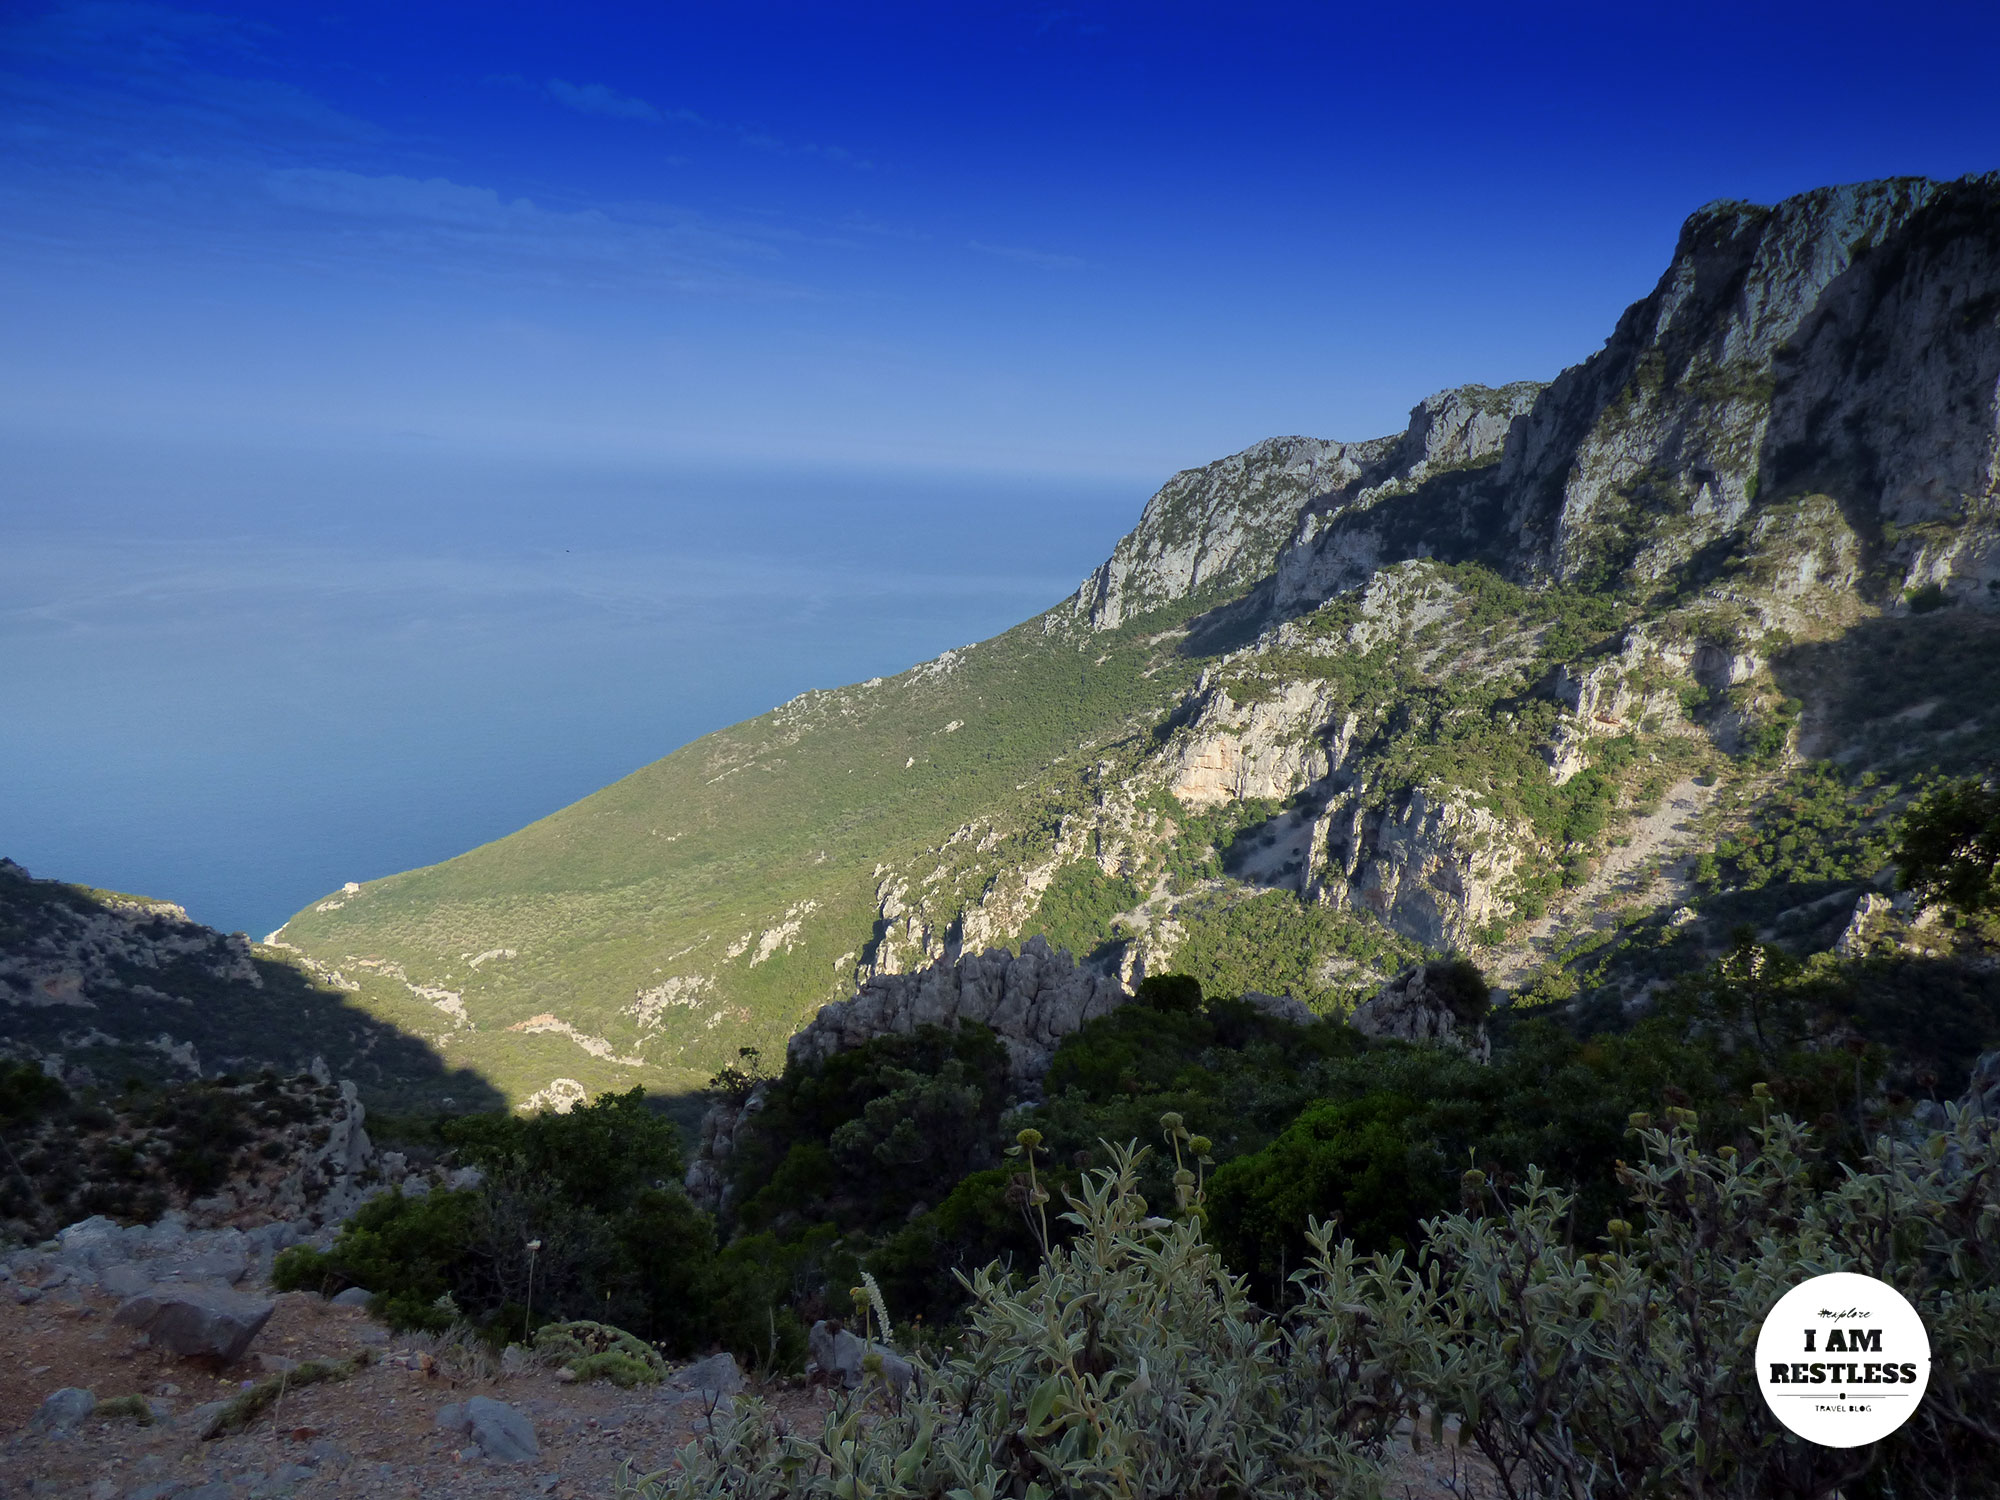 What-to-See-in-Greece-The-Scenic-Lookout-at-BellEkklisia-Agia-Paraskevi-Εκκλησία-Αγία-Παρασκευή---13.jpg